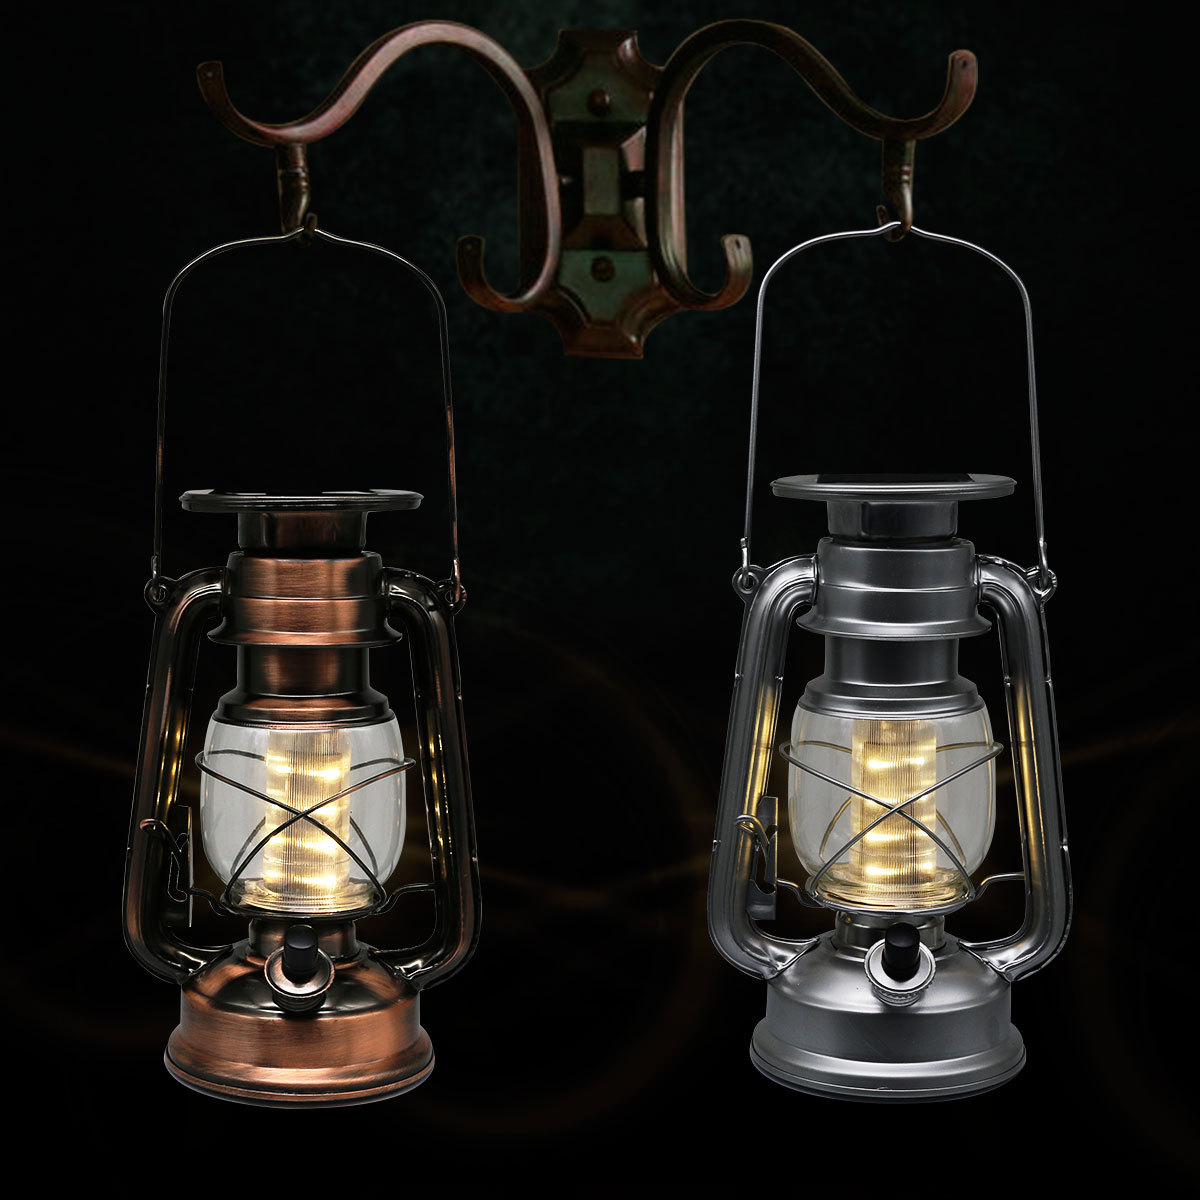 Solar Power 12 LEDs Camping Light Outdoor Waterproof Garden Pathway Lamp Light Energy Saving LED Silver Copper Color Optional(China (Mainland))